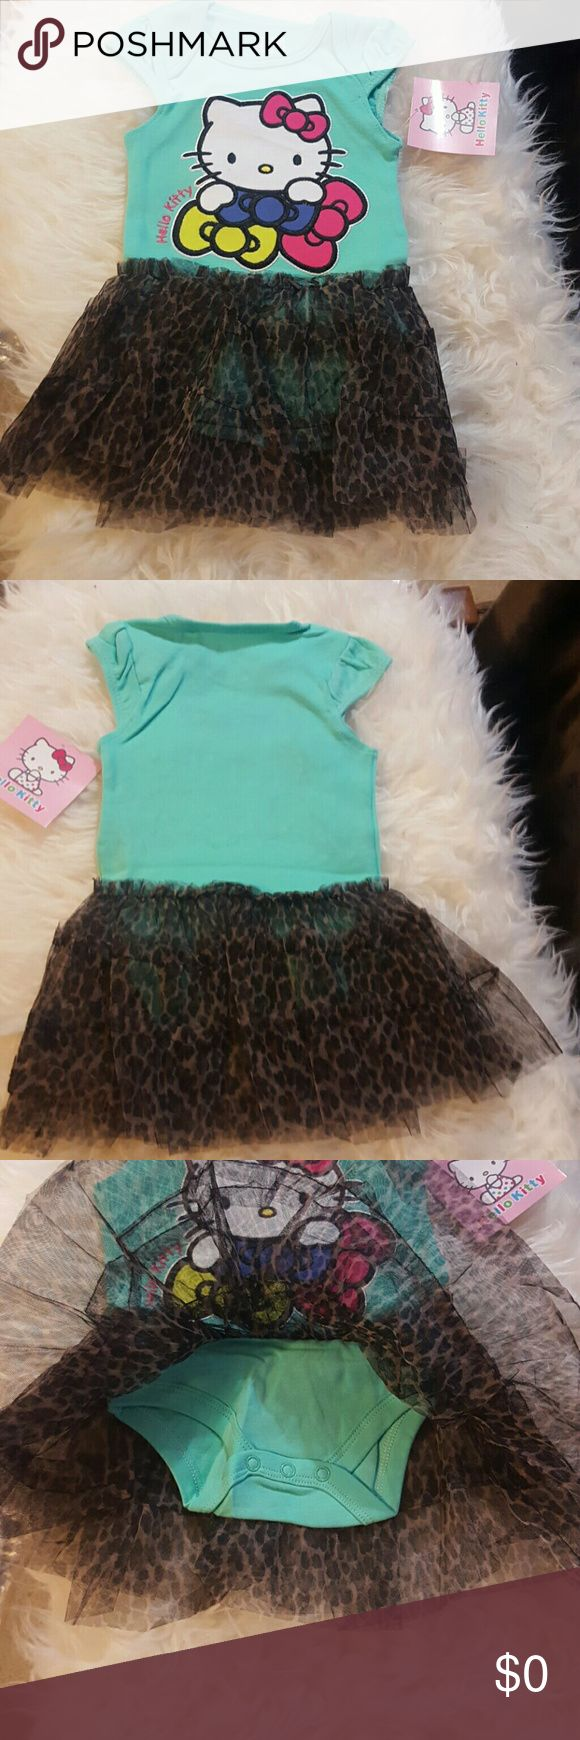 🍼🎀 Fun loving hello kitty ballerina style dress This fun, playful, hello tutu hello kitty dress is Ntw and fits baby 3-6months. The shirt portion of the dress is said turquoise color with sweet hello kitty on it. The shirt part is actual a onsee with snaps. The skirt is sown of  and layered with a suttel leapord pattern. Baby will look adorable in this iconic character based outfit. And the tutu part is leapord! Leapord!? What more can I say ;) Other